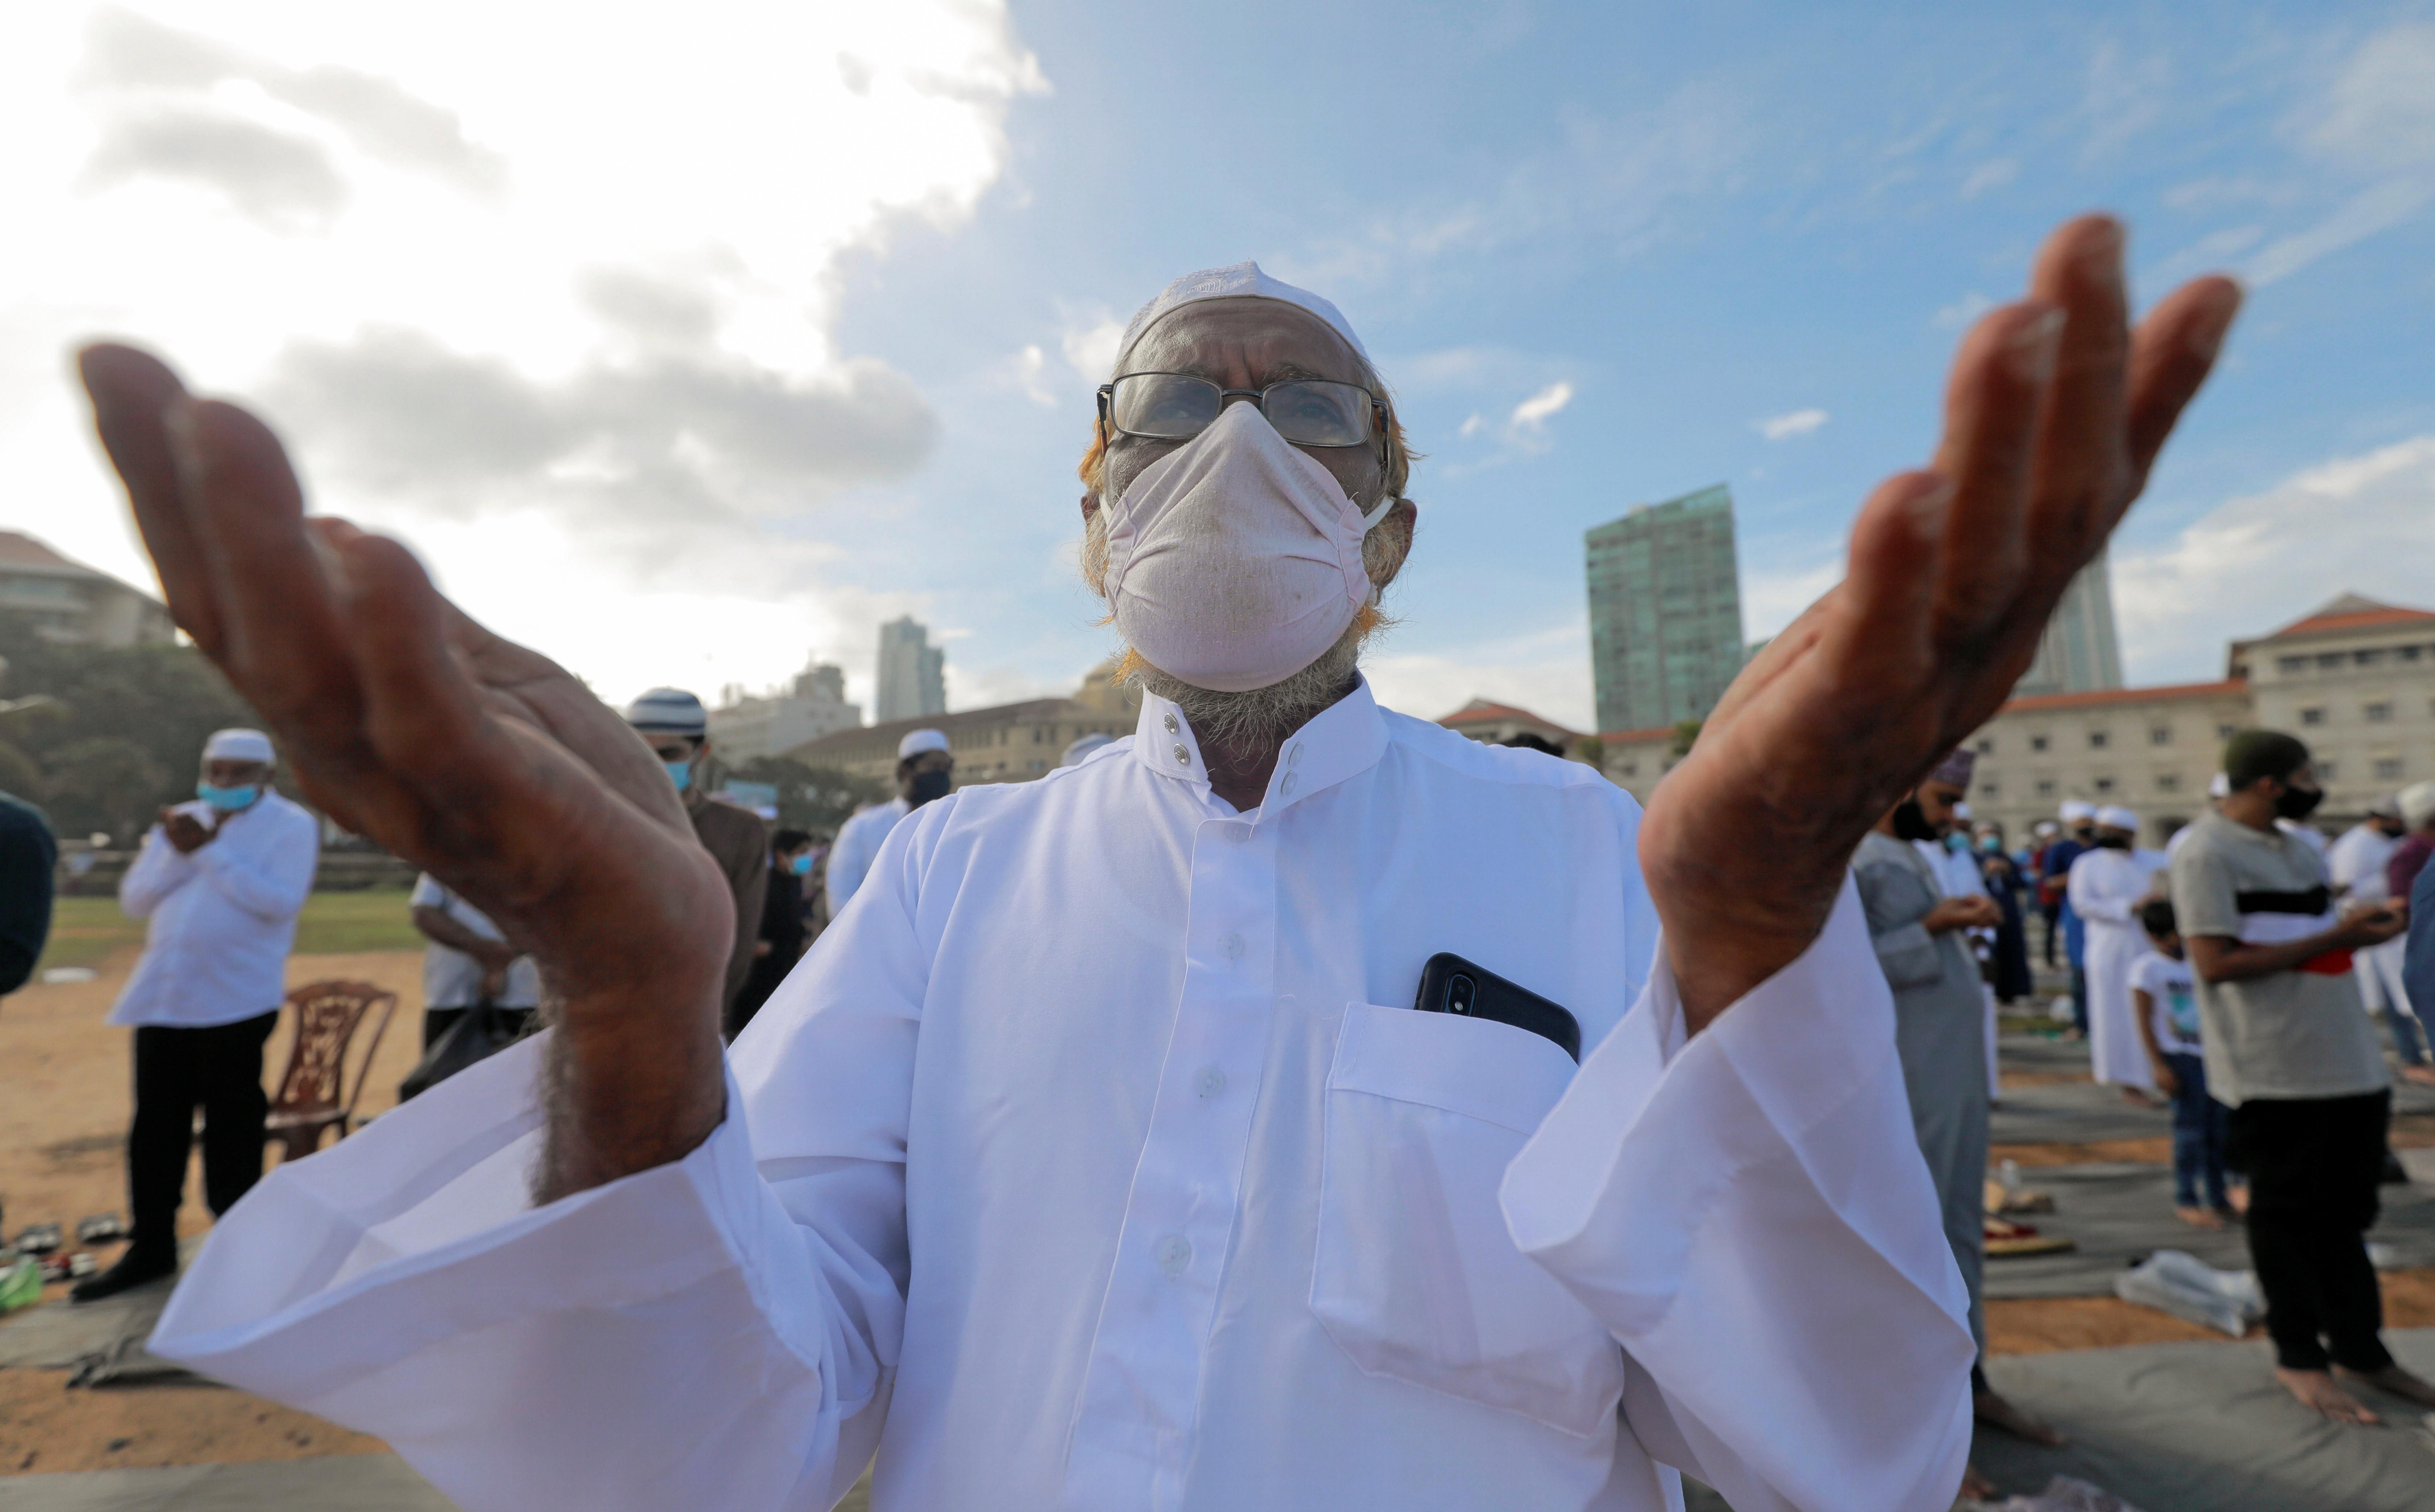 A Muslim man wearing a protective mask practice social distancing as he attends a prayer to mark the Hajj festival, amid concerns about the spread of the coronavirus disease (COVID-19), in Colombo, Sri Lanka, August 1, 2020.